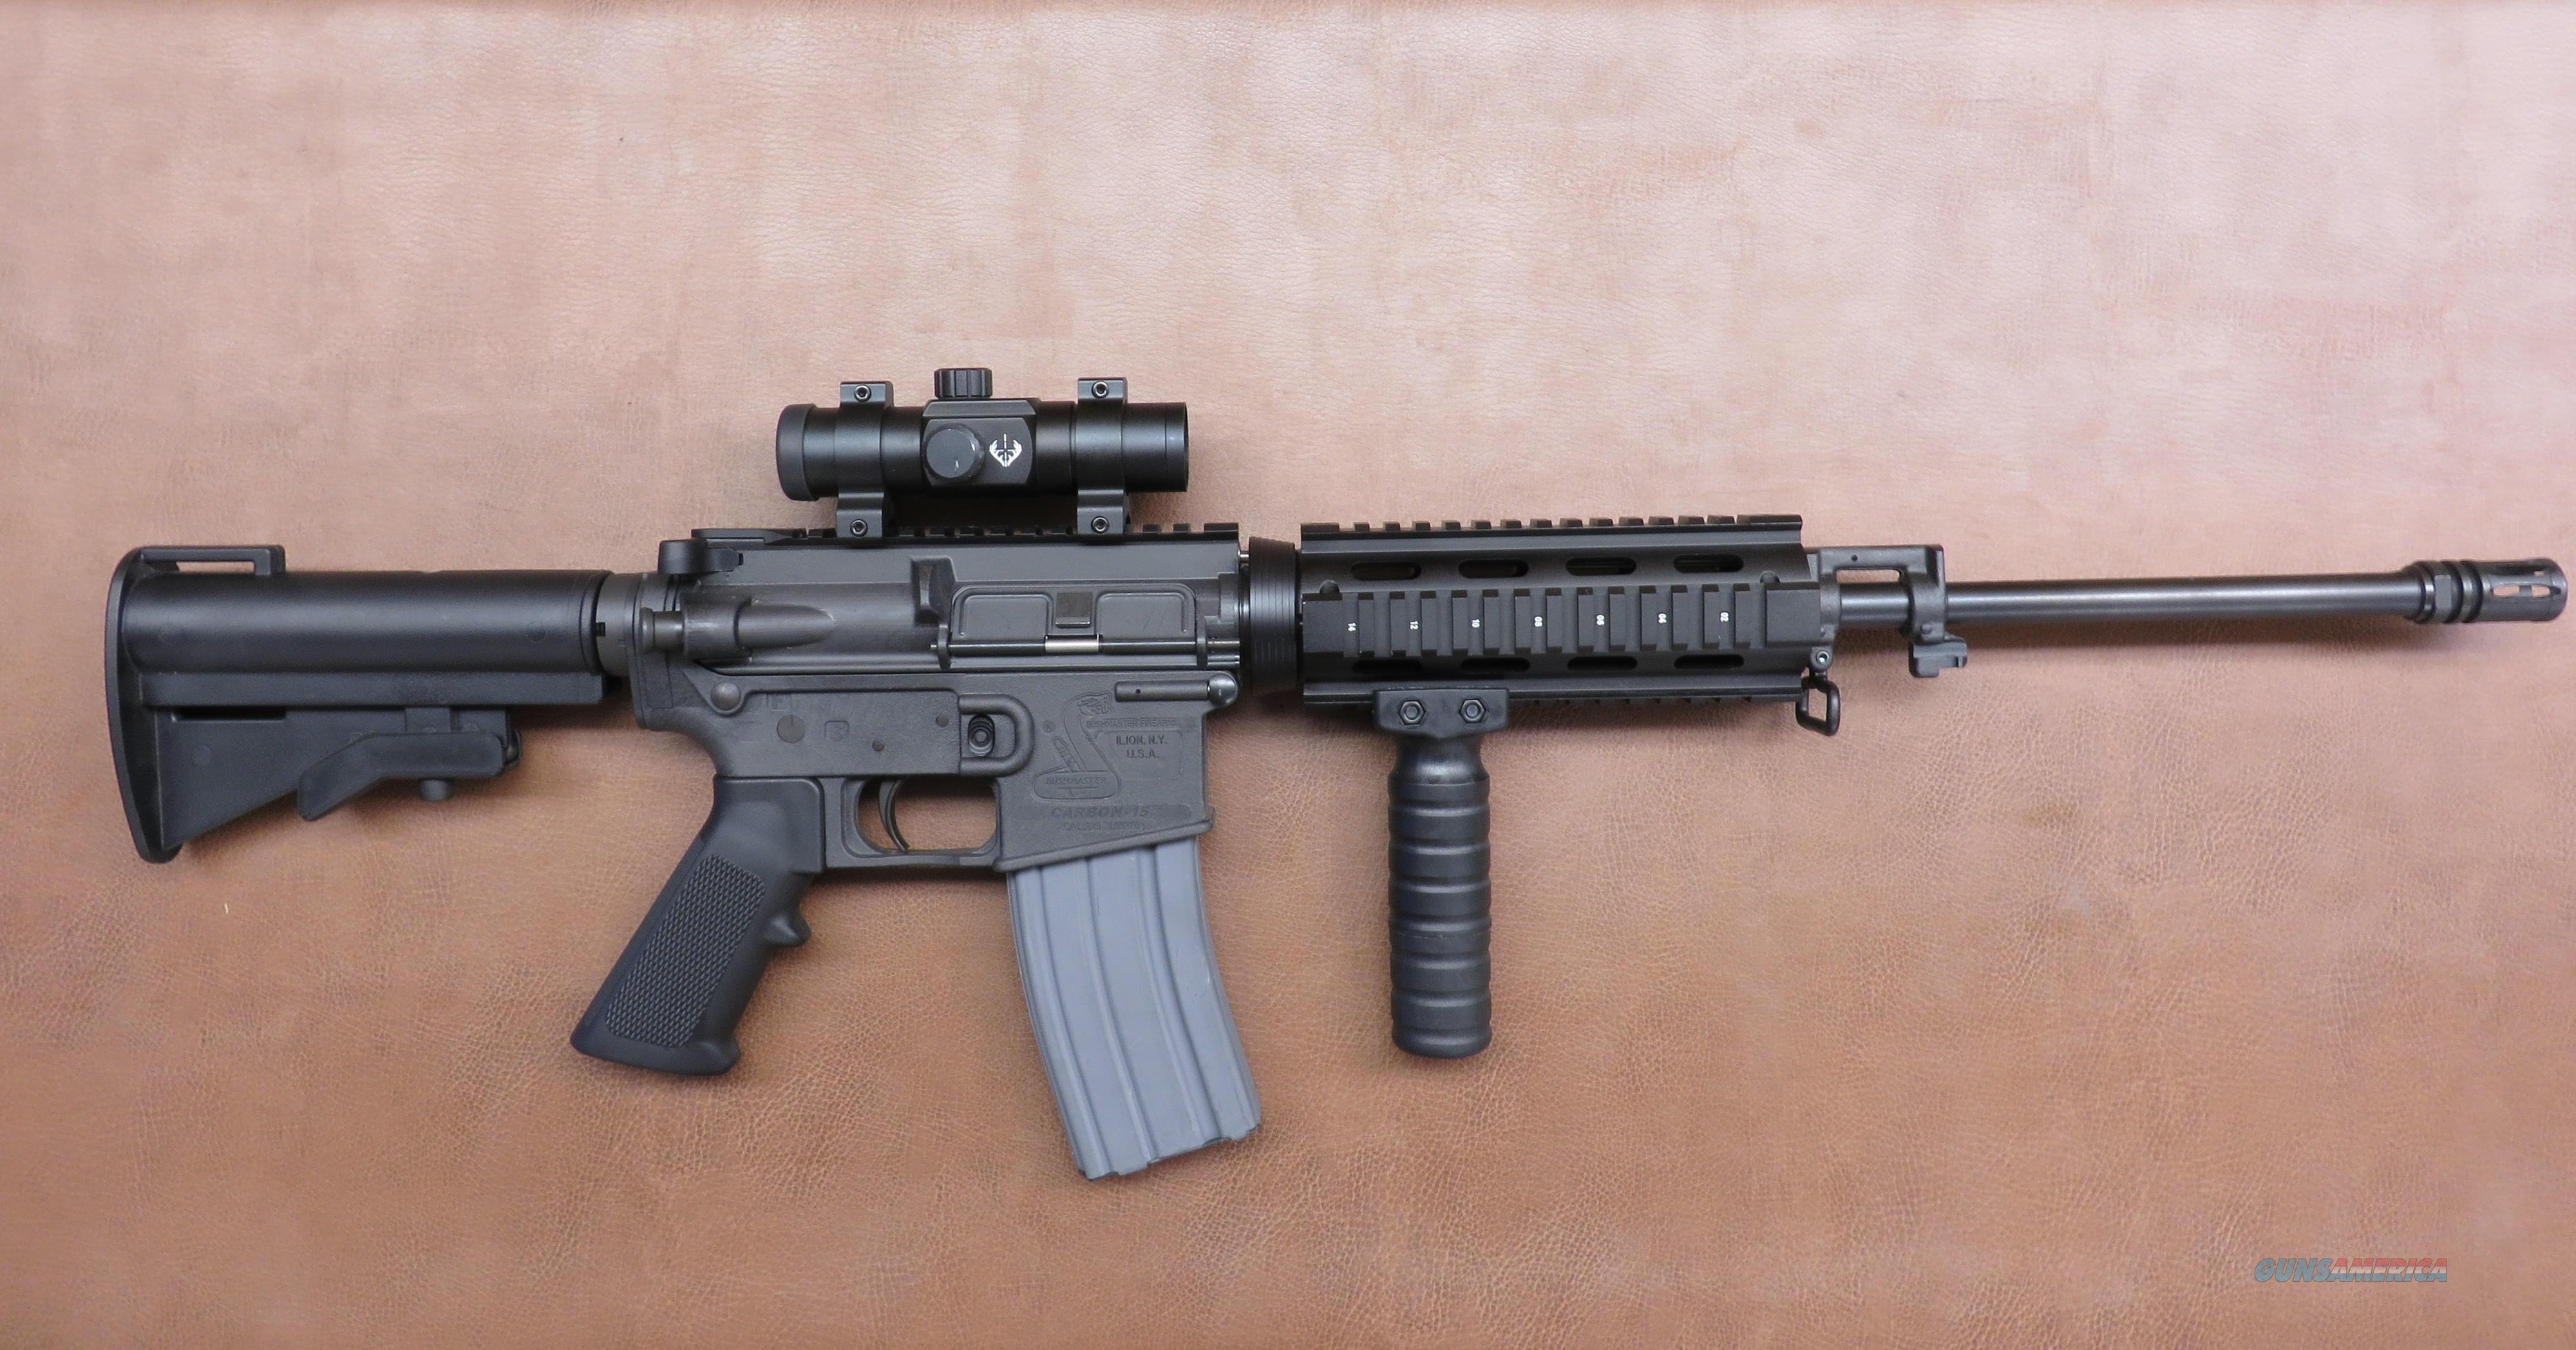 Bushmaster Carbon 15  Guns > Rifles > Bushmaster Rifles > Complete Rifles